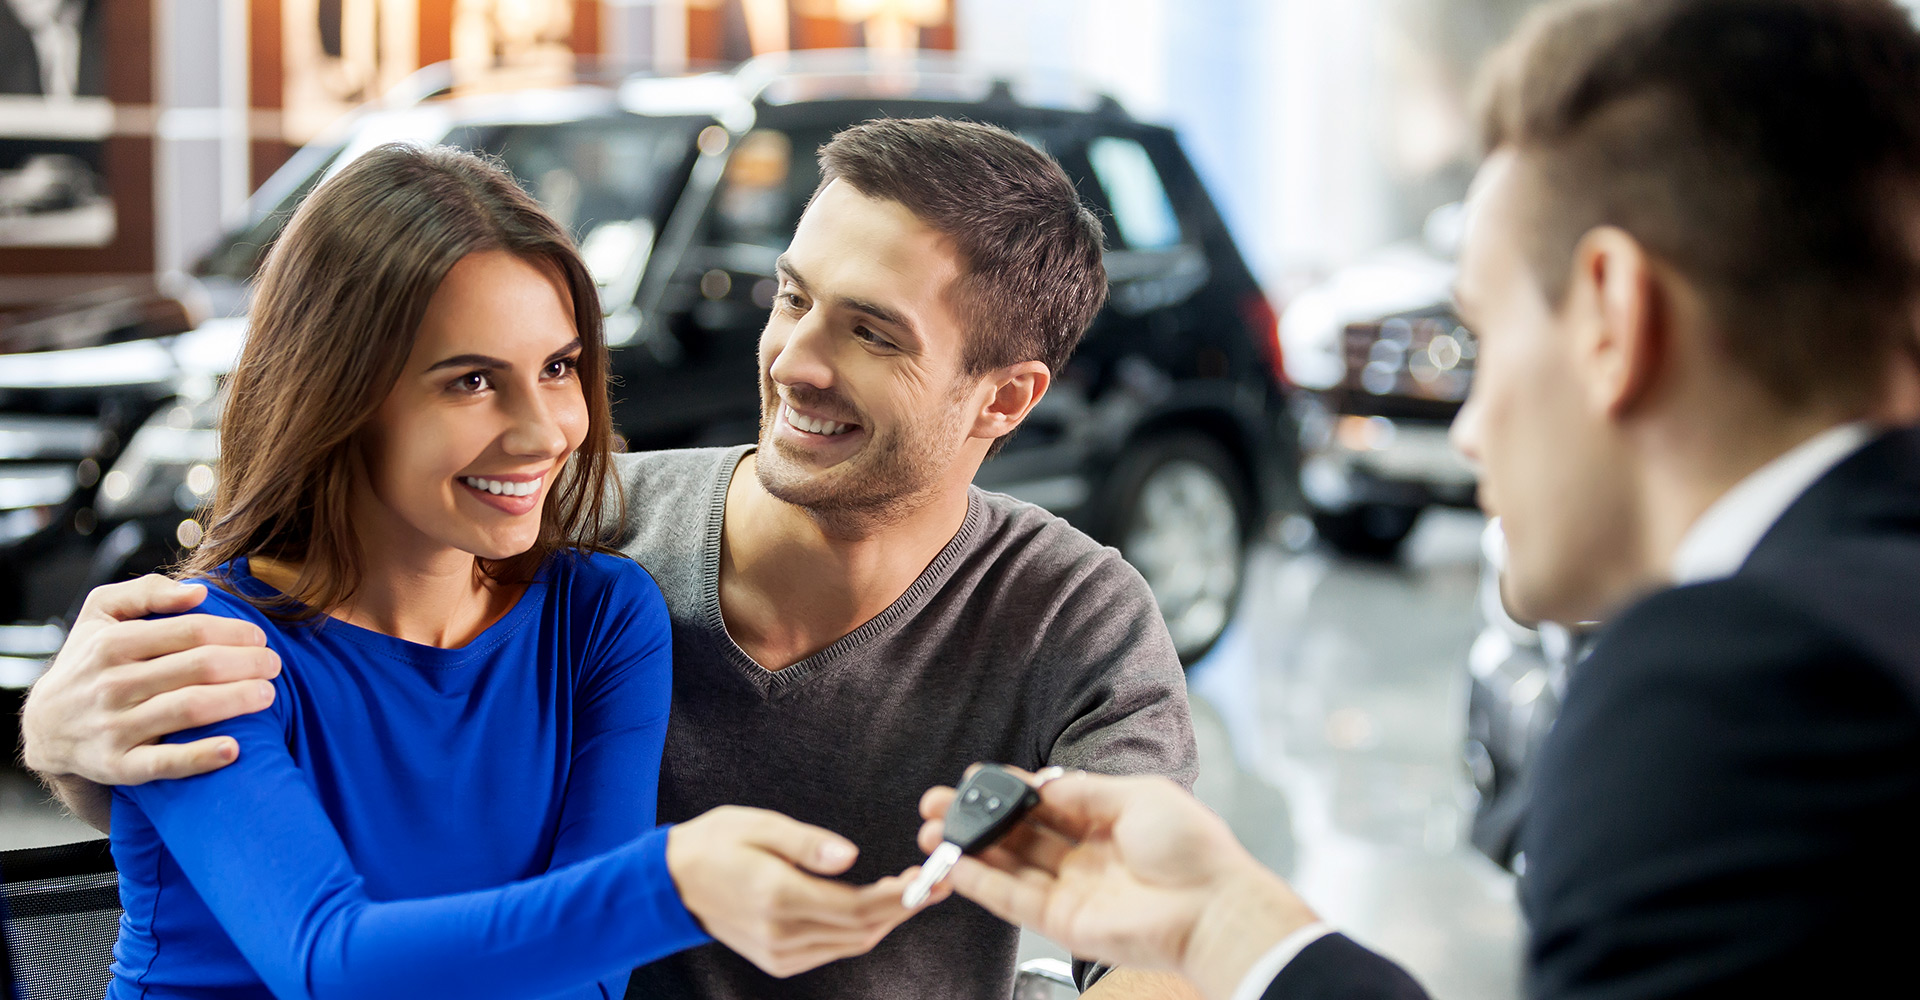 welcome to drivesmartusa huntsville al we are your preferred buy here pay here car dealership here pay here car dealership